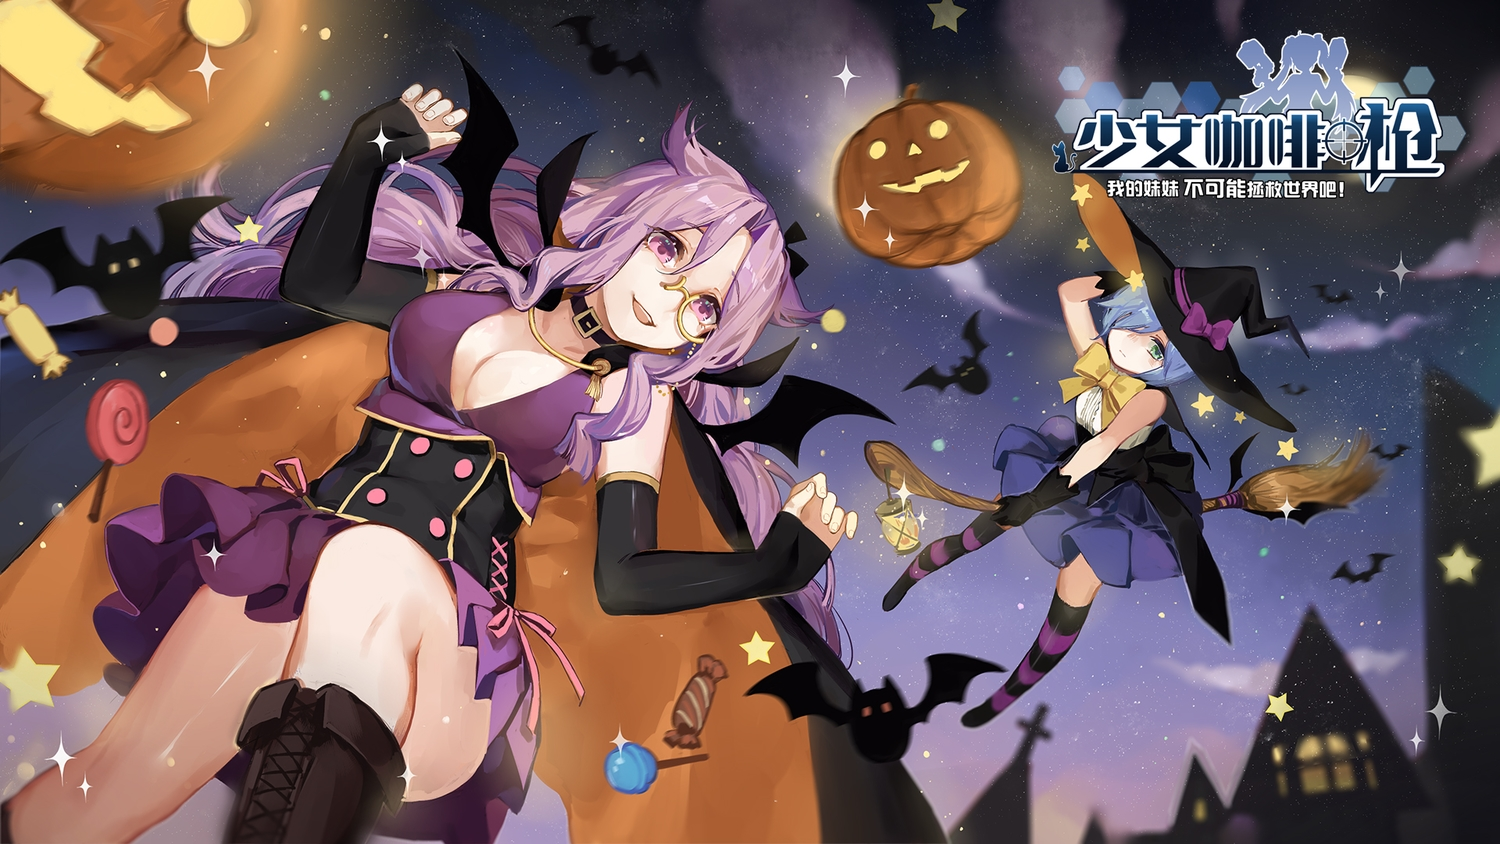 2girls animal bat cornelia_(girl_cafe_gun) girl_cafe_gun_(game) glasses halloween logo nora_moon tagme_(artist)